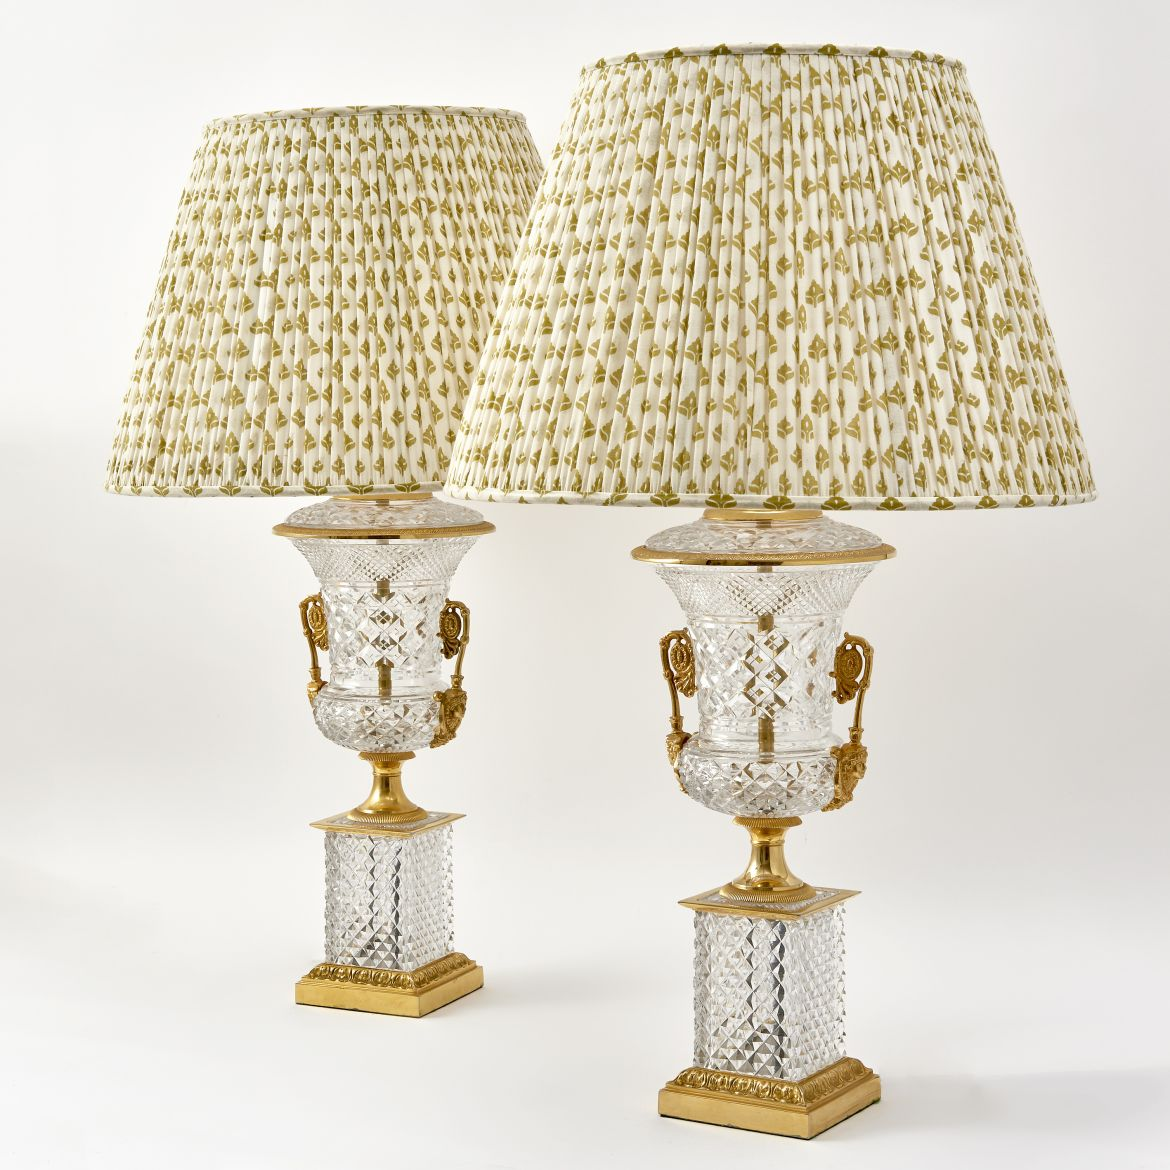 Pair French Empire Style Cut Glass Lamps In The Form Of Campana Urns